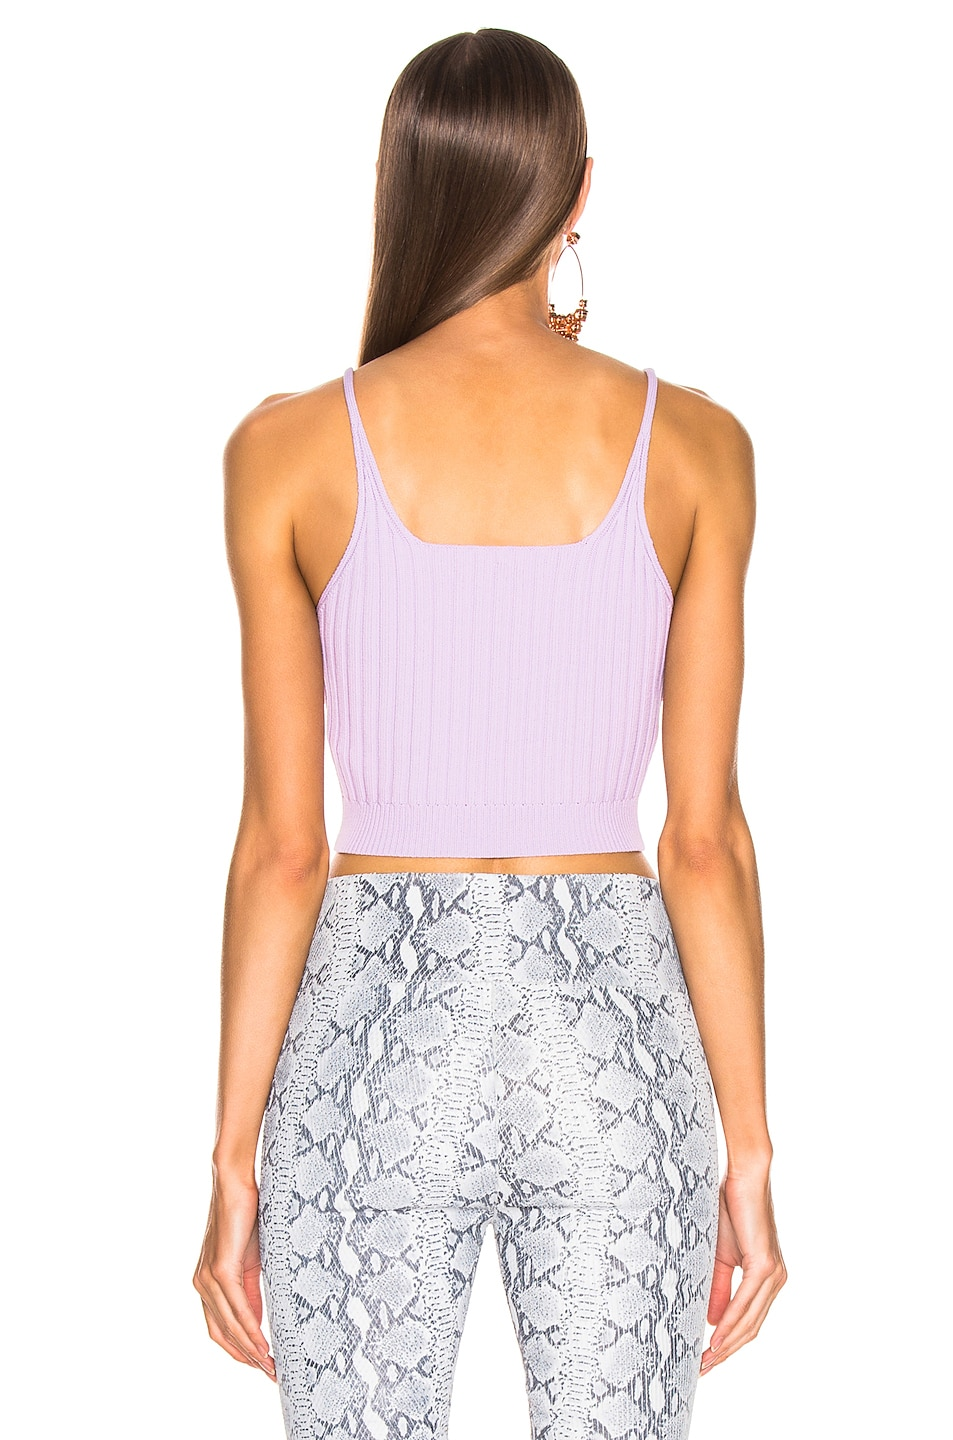 Image 3 of T by Alexander Wang Shrunken Rib Bra Top in Lavender